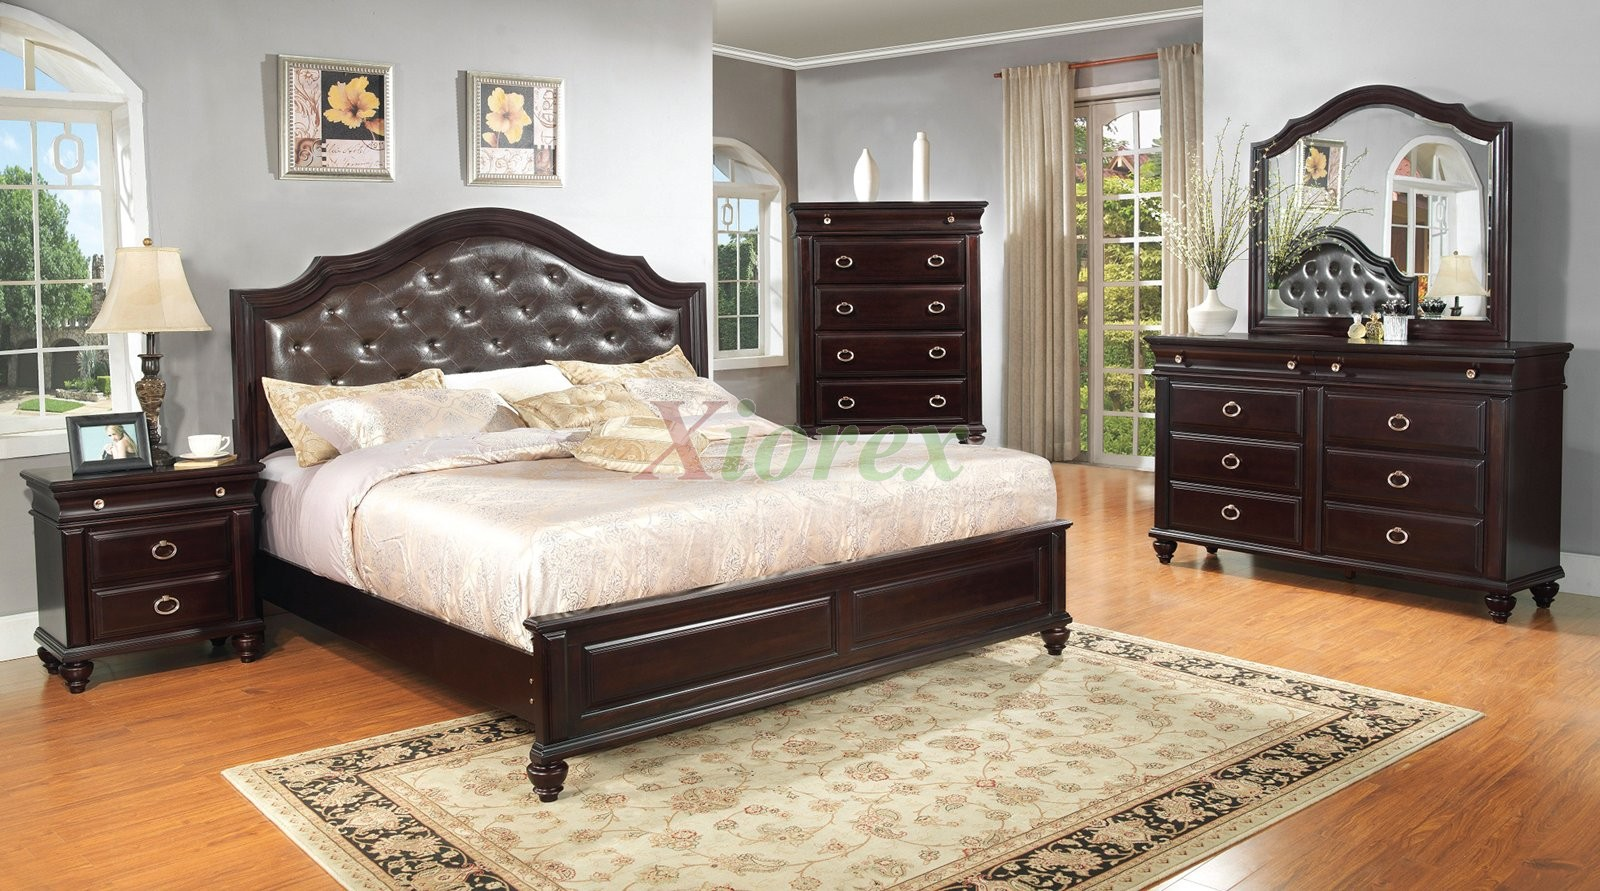 leather headboard size resolution set high and furniture headboards modern king storage design sets bedroom wood